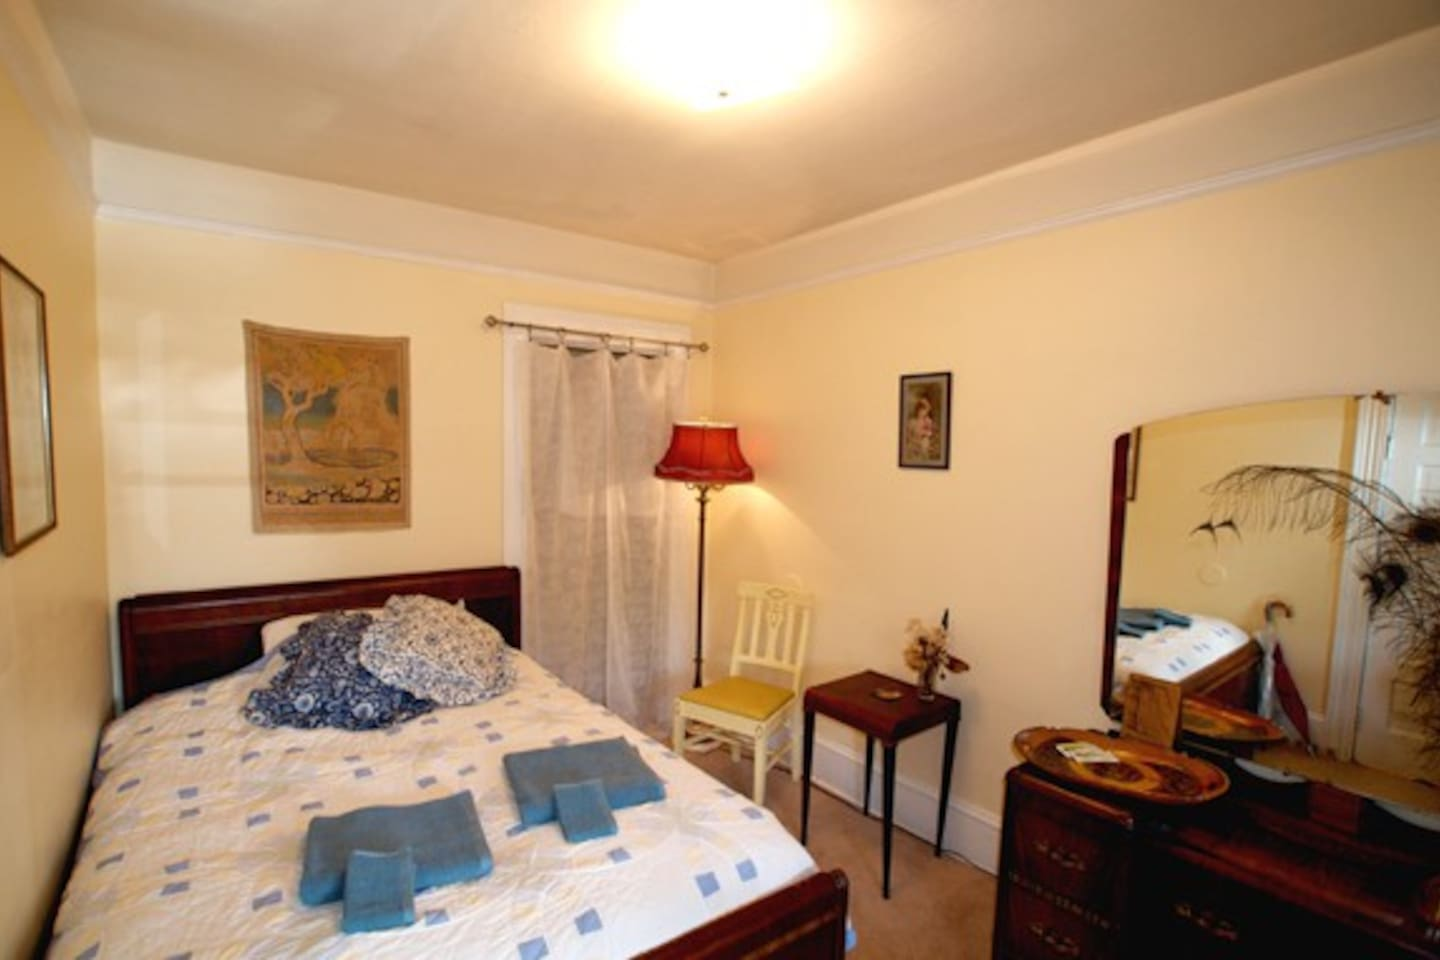 guest bedroom with full size bed and down matress cover                      guest bedroom with down mattress cover....